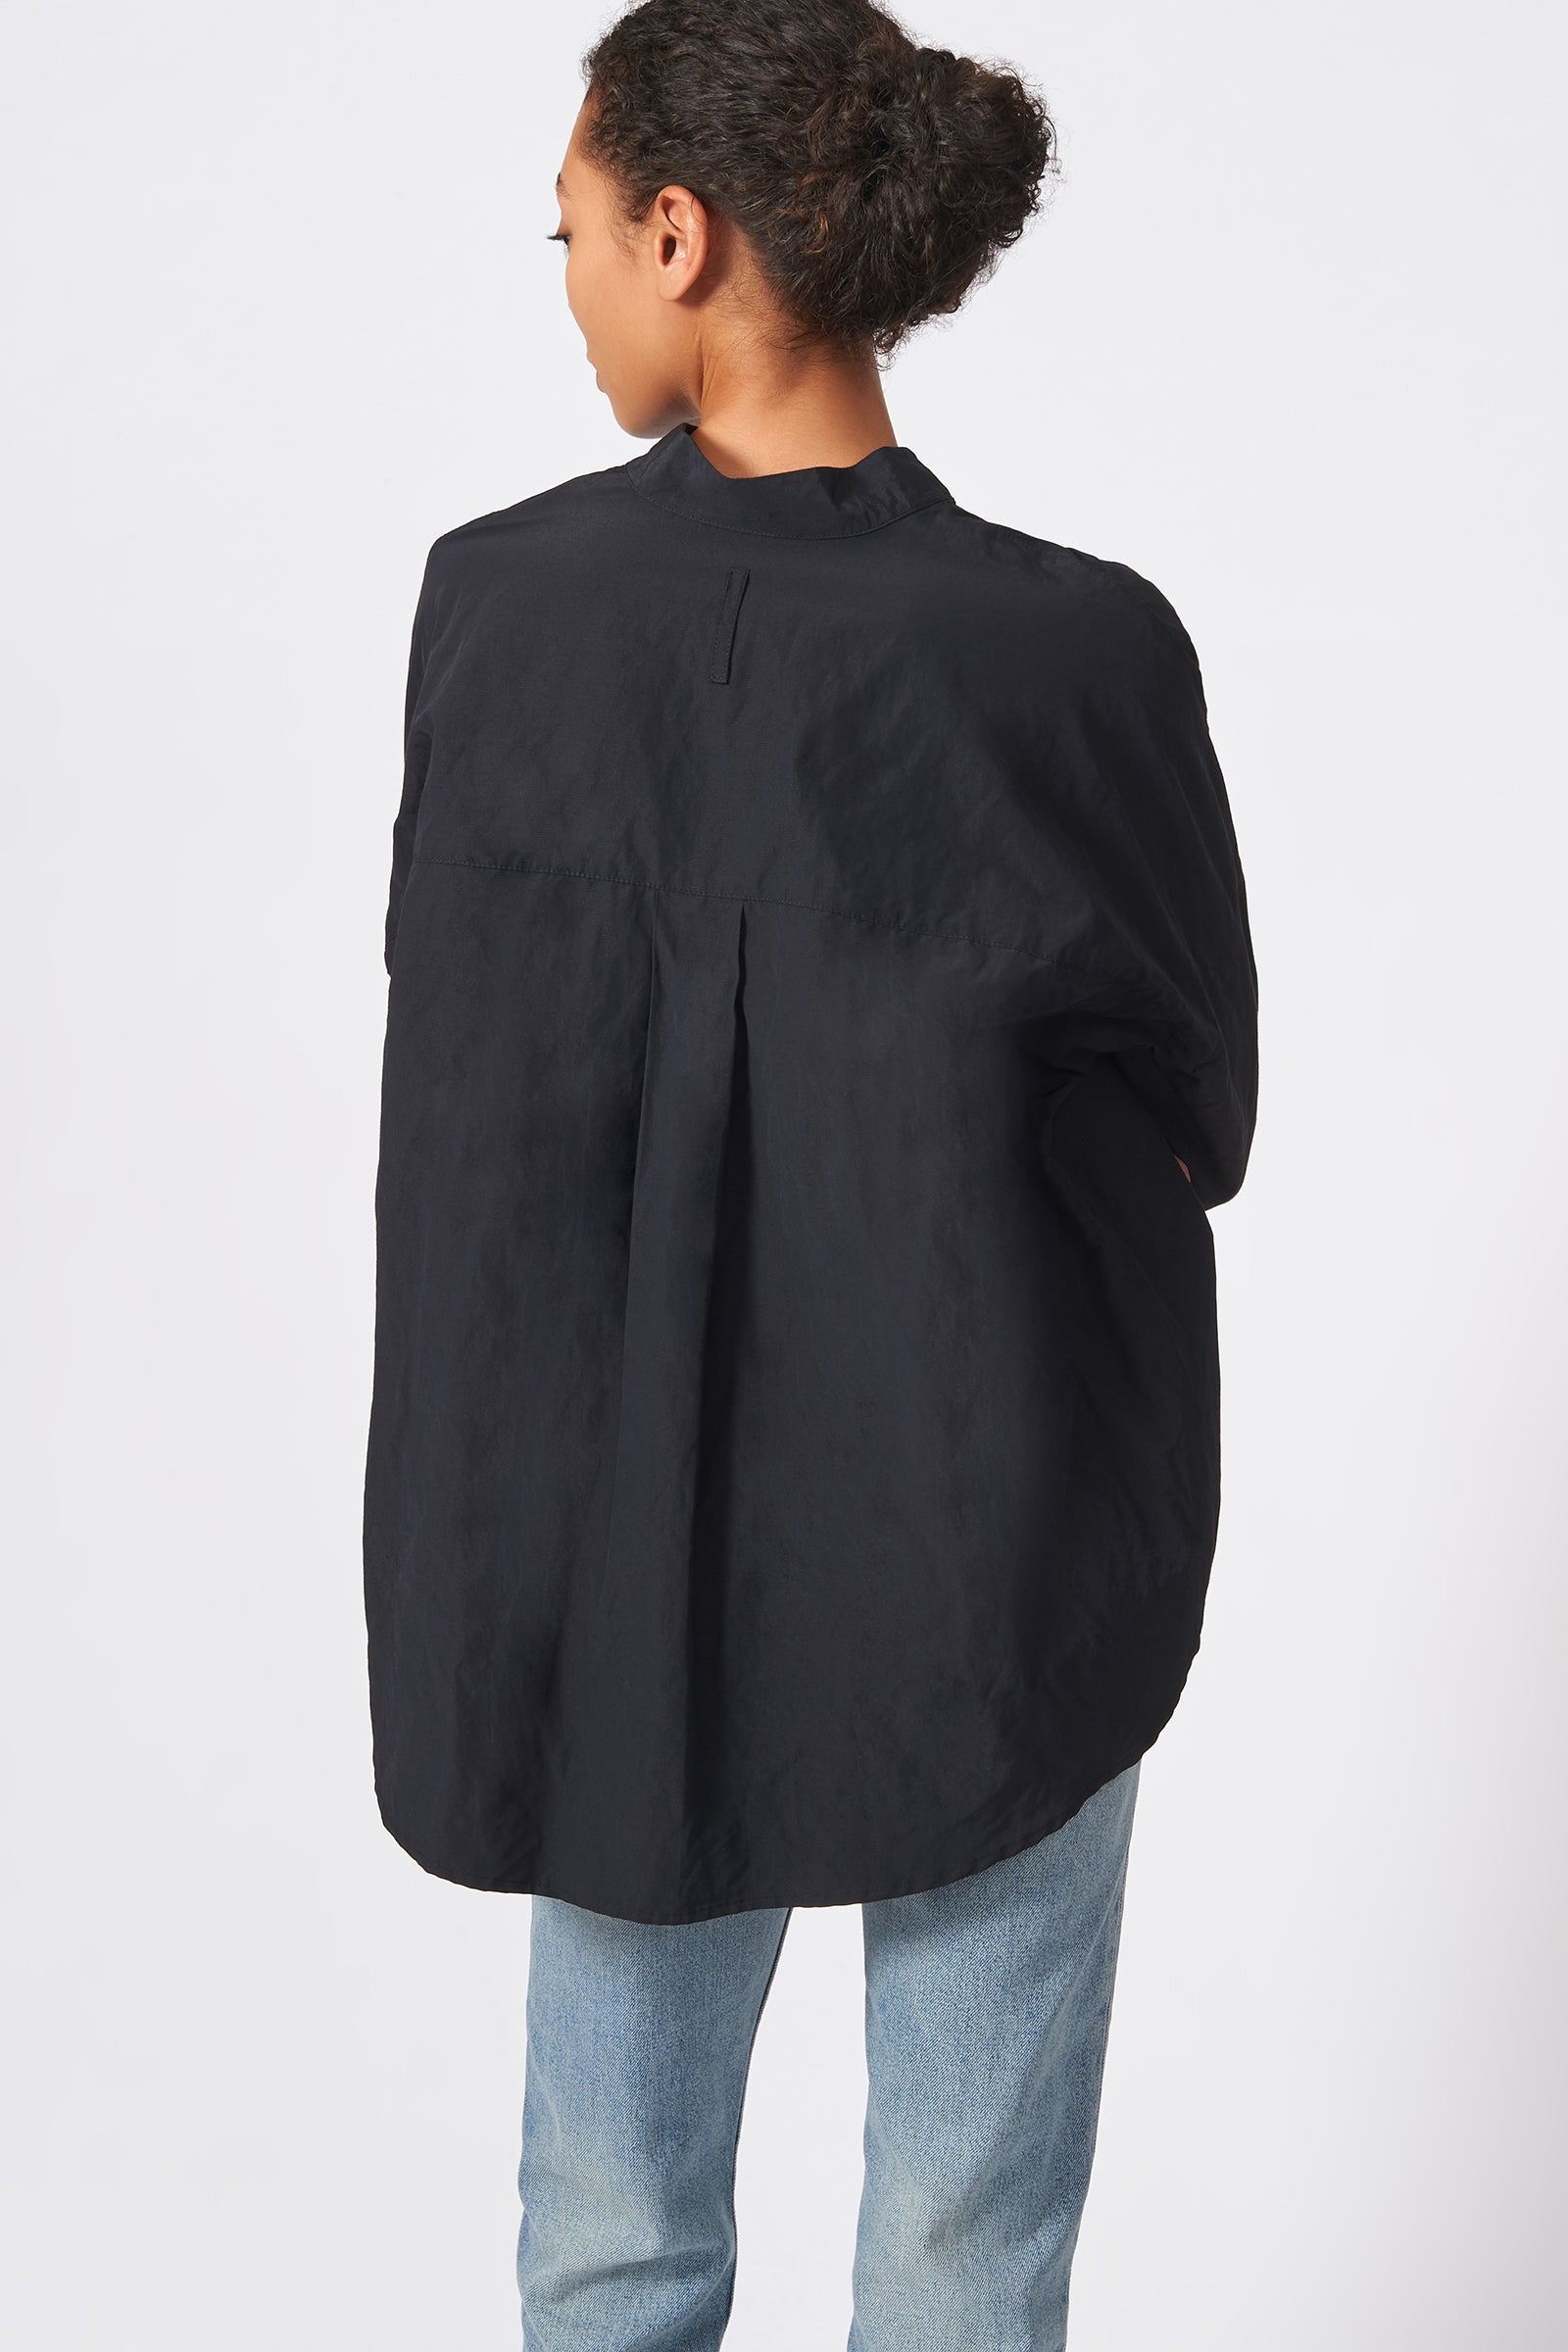 Kal Rieman Pleat Hem Kimono Cotton Nylon in Black on Model Back View